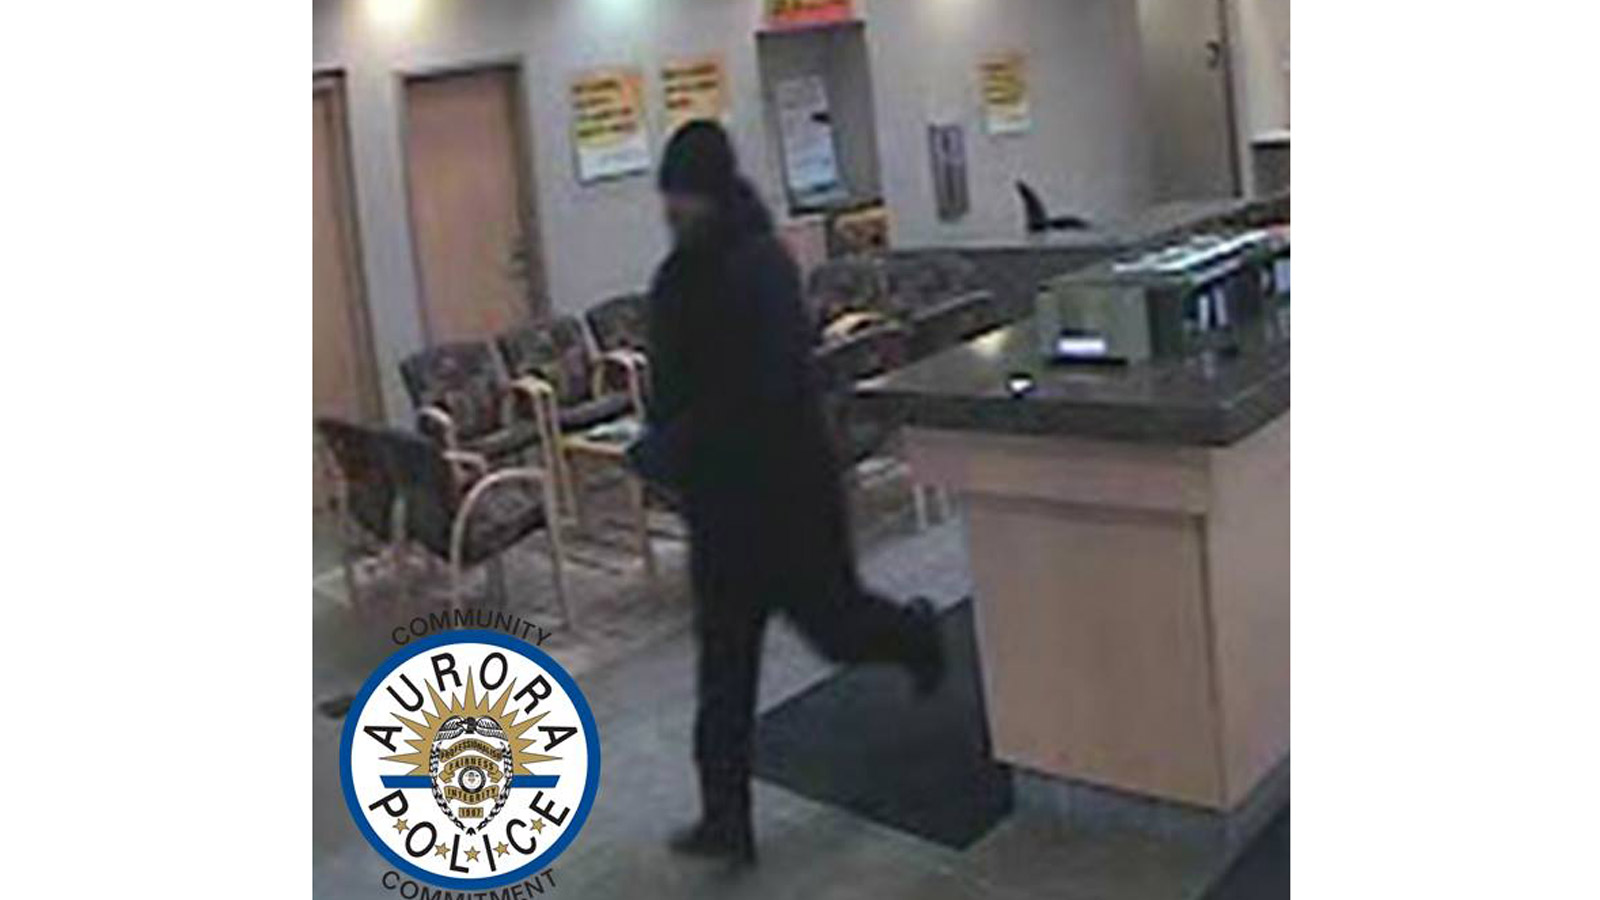 APD TCF 6th Ave earlier bank robber2